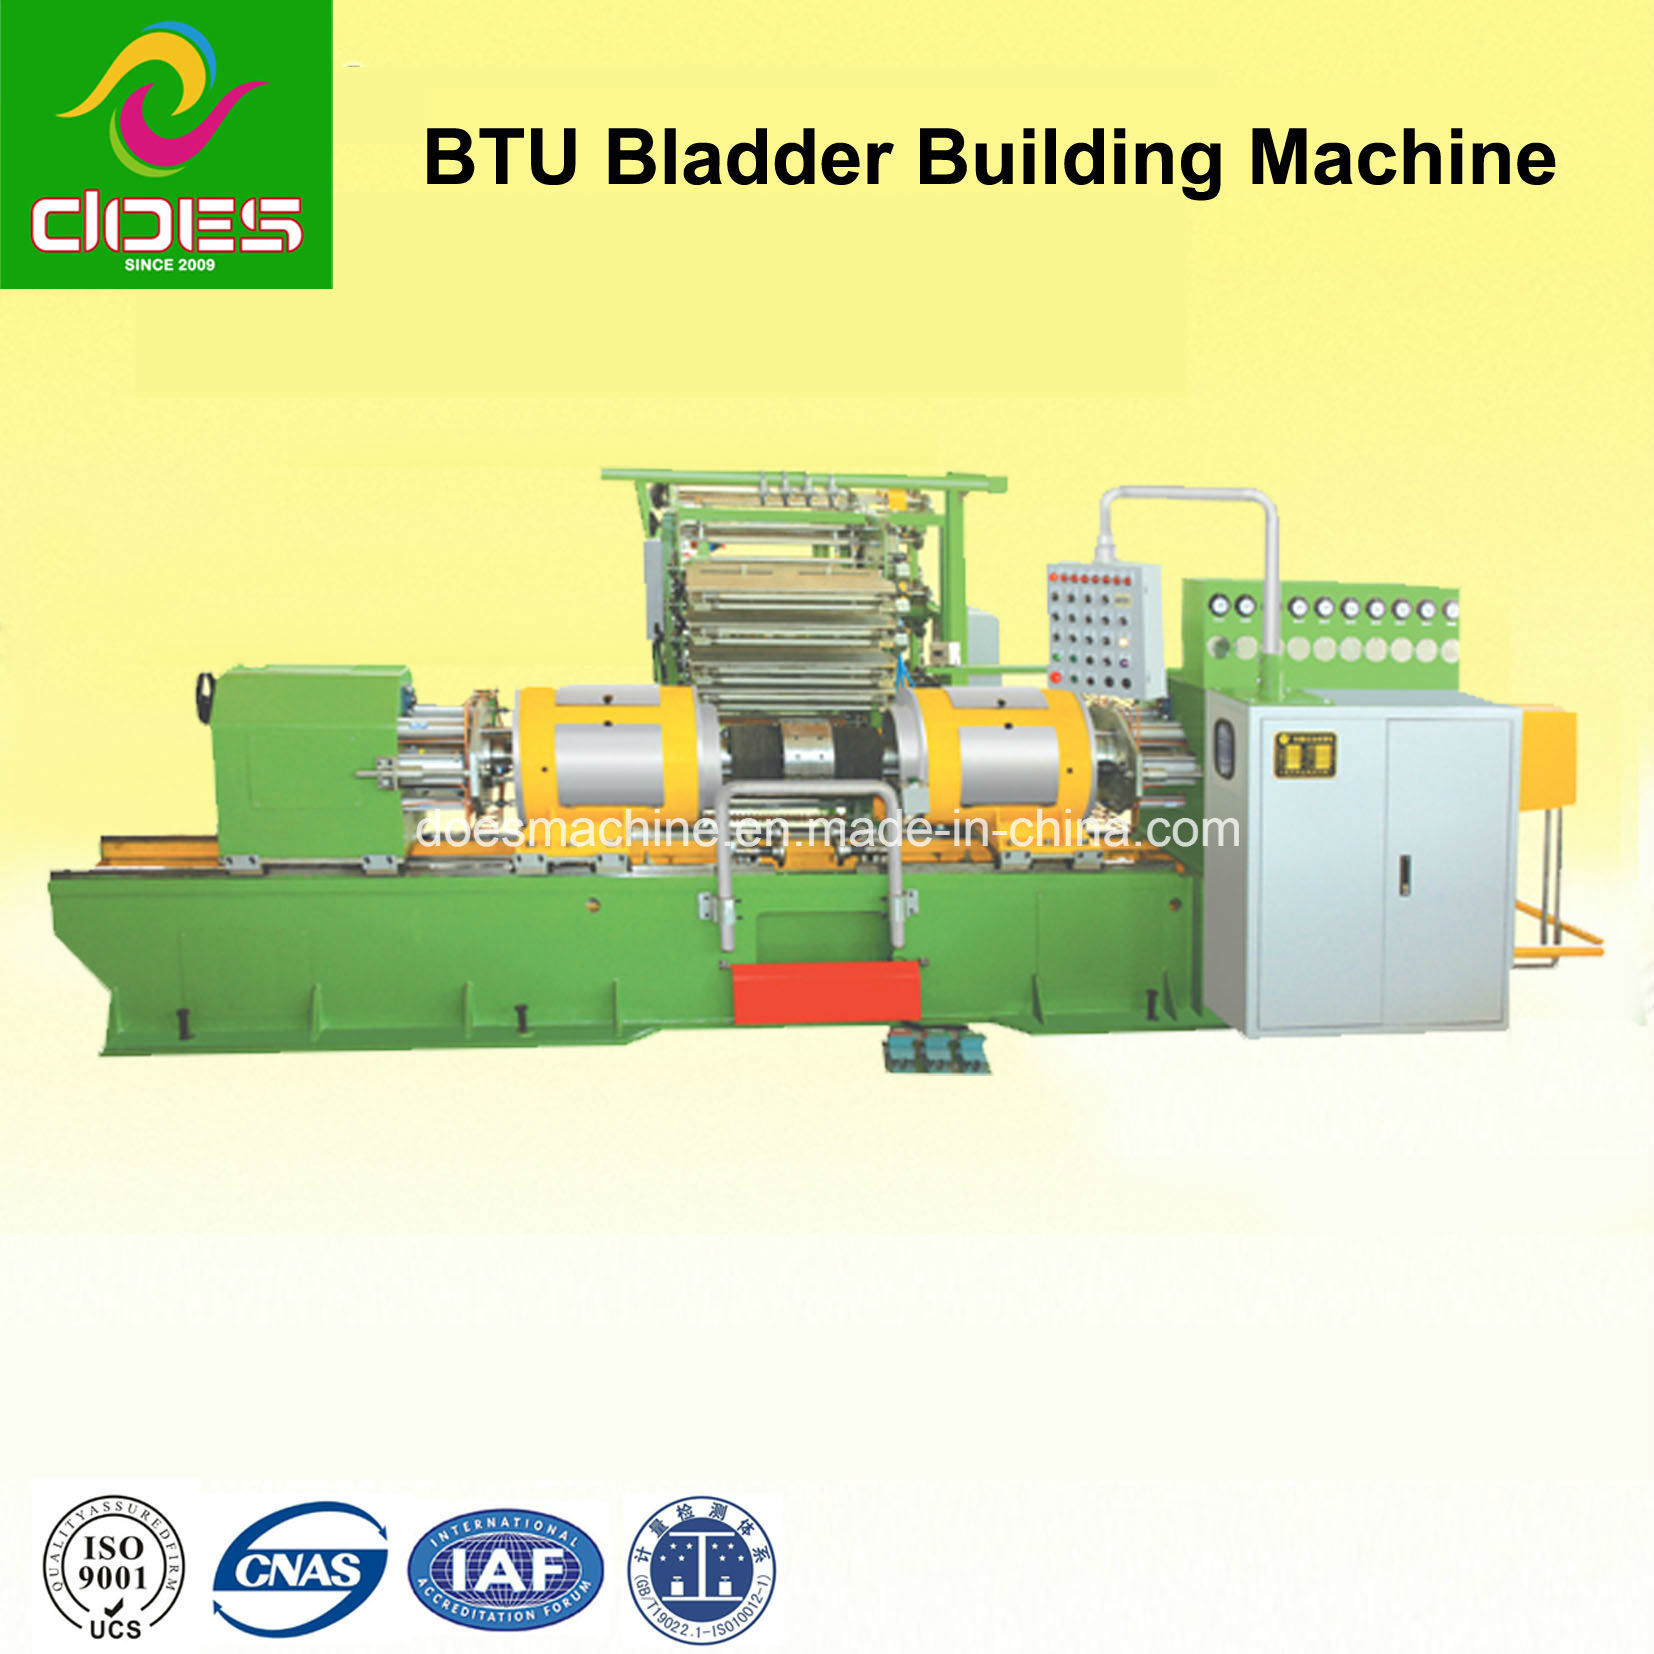 BTU Tyre Building Machine for Bladder Turn-up (0814)